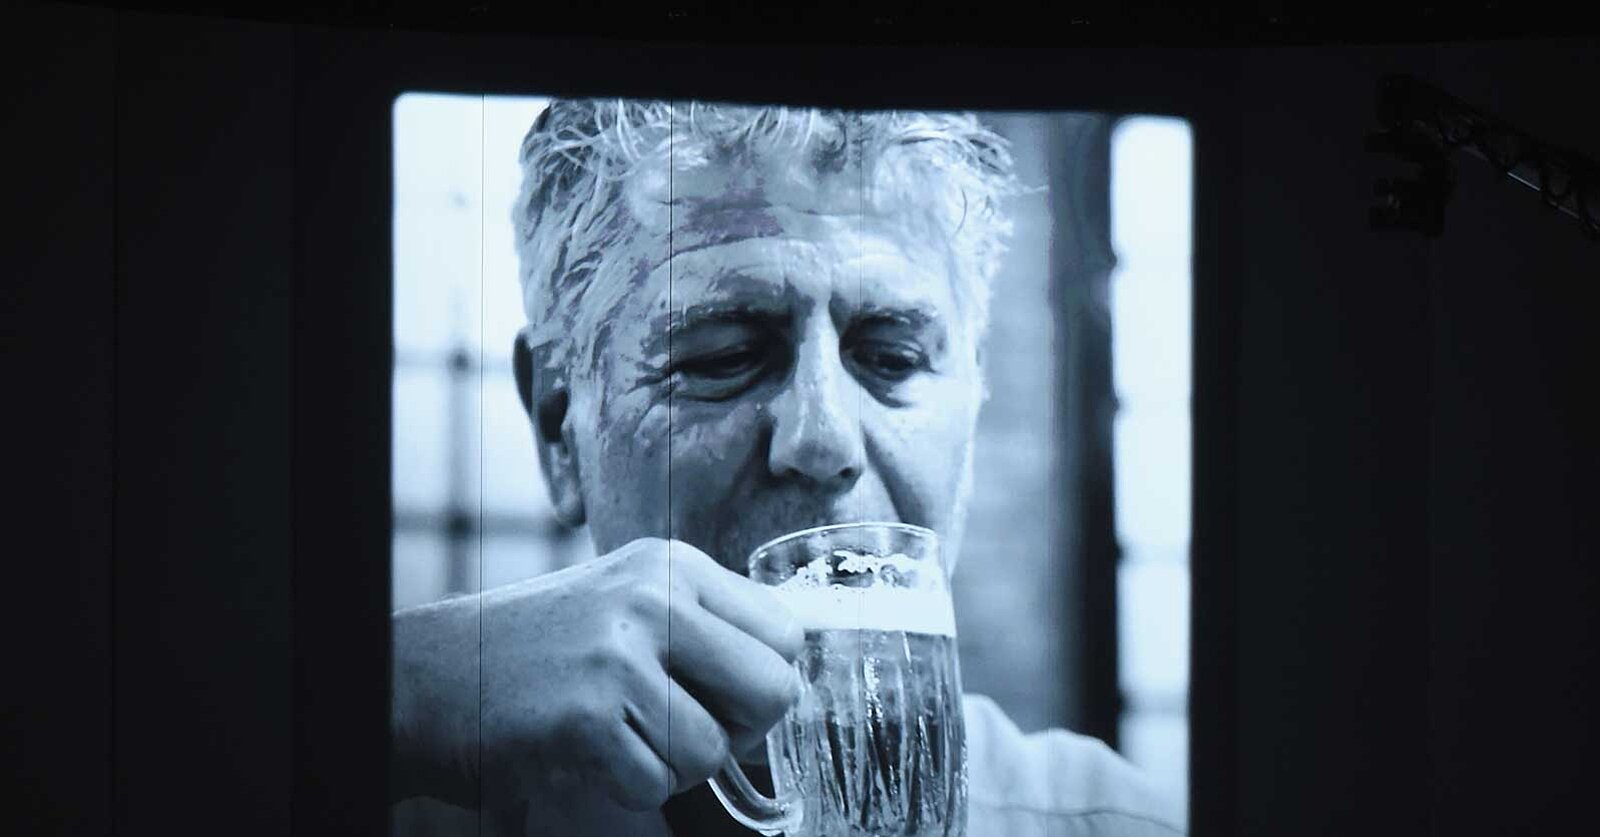 Anthony Bourdain Quotes That Will Inspire You to Travel More, Eat Better, and Enjoy Life